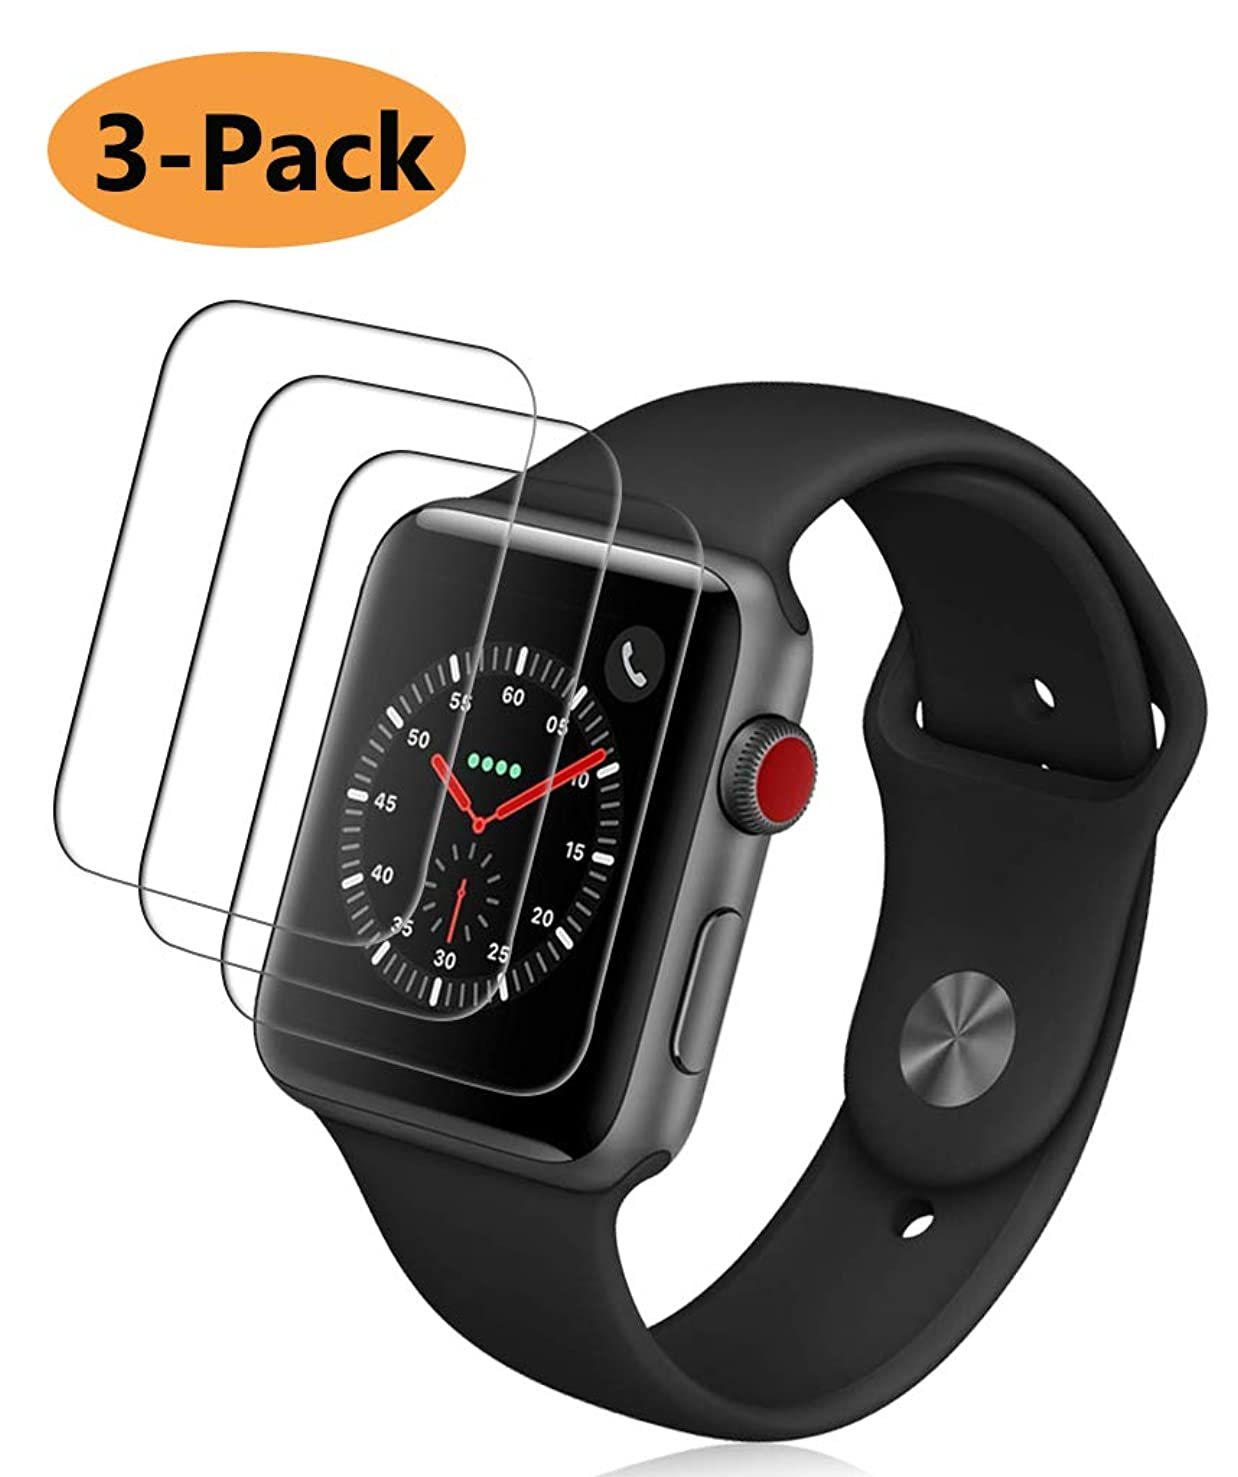 [3 Pack] Fotbor for Apple Watch Screen Protector 42mm Series 3/2/ 1, HD Clear Anti-Scratch Anti-Bubble Tempered Glass Screen Protector Lifetime Replacement Warranty [Only Covers The Flat Area] (42mm)